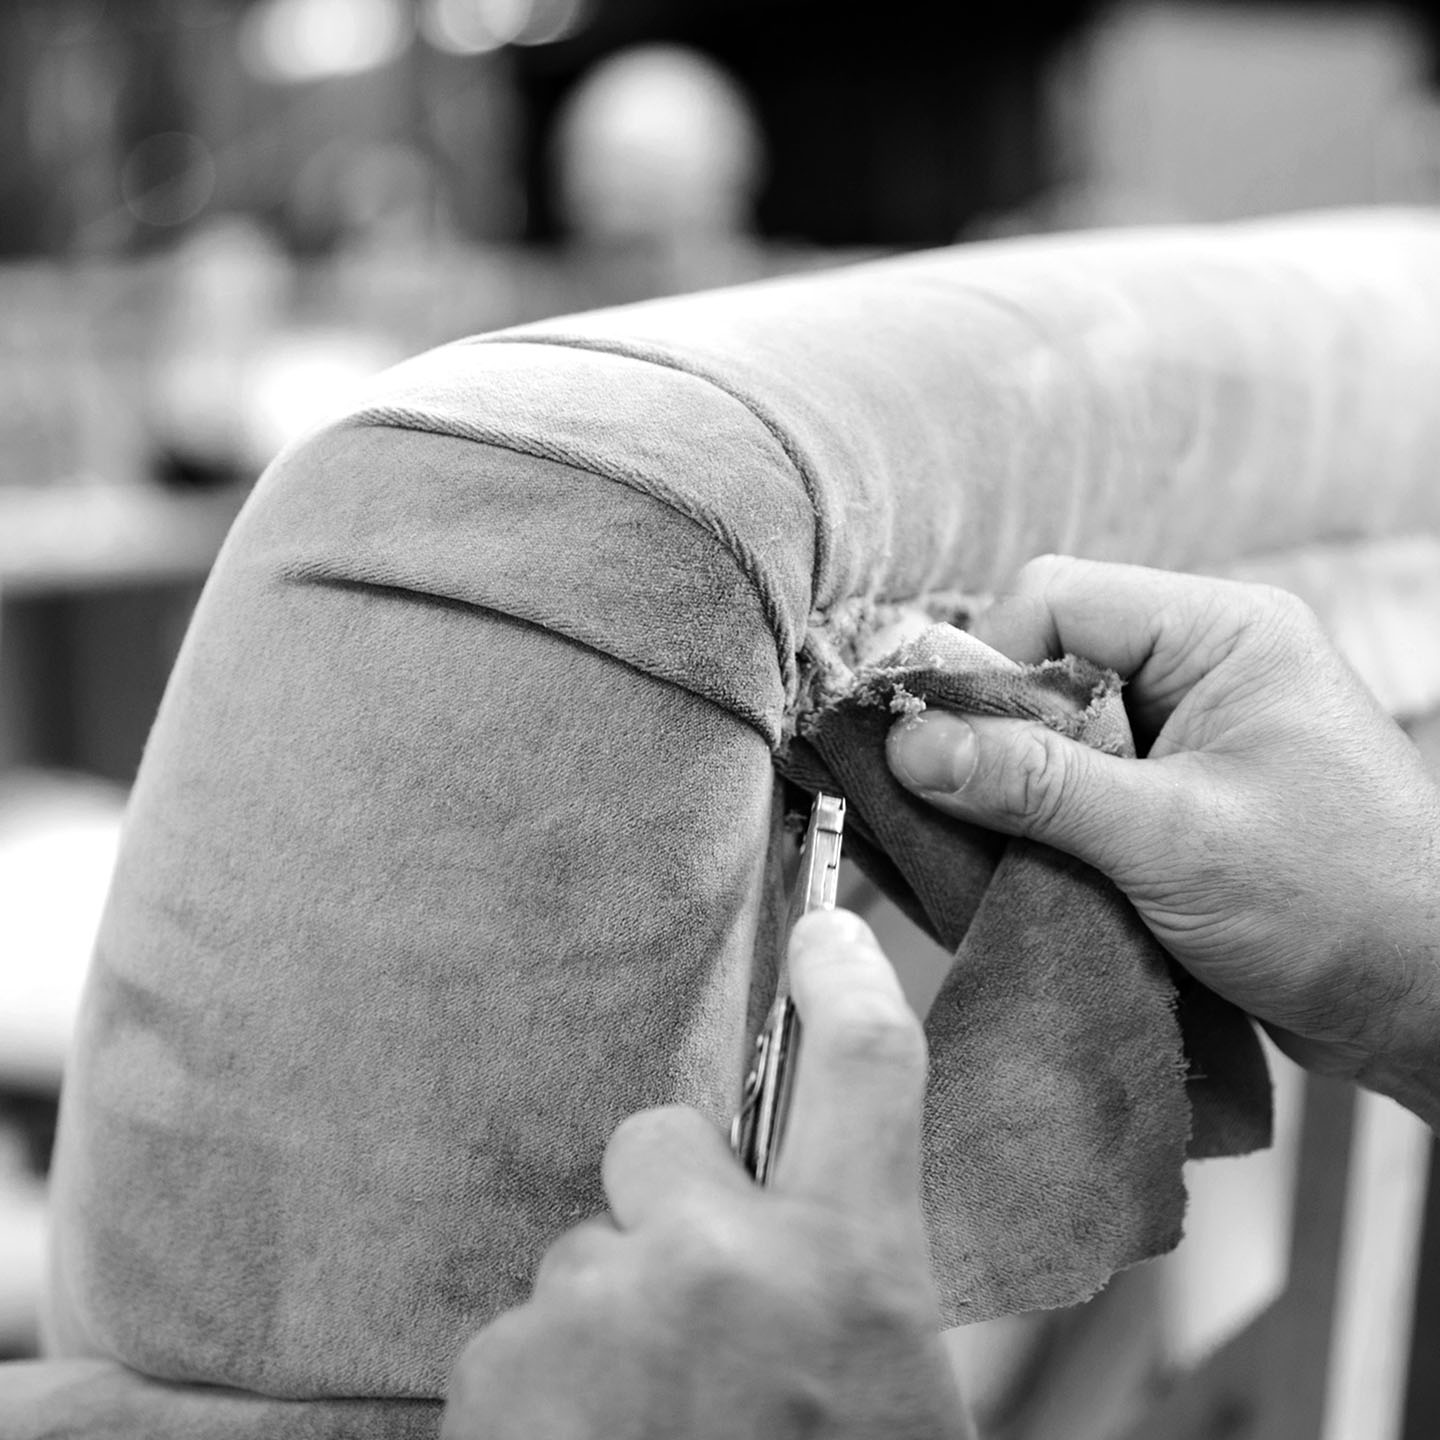 Handmade upholstered armchairs and sofas to order by craftsmen and women in the UK, using traditional upholsterey methods in the Long Eaton factory